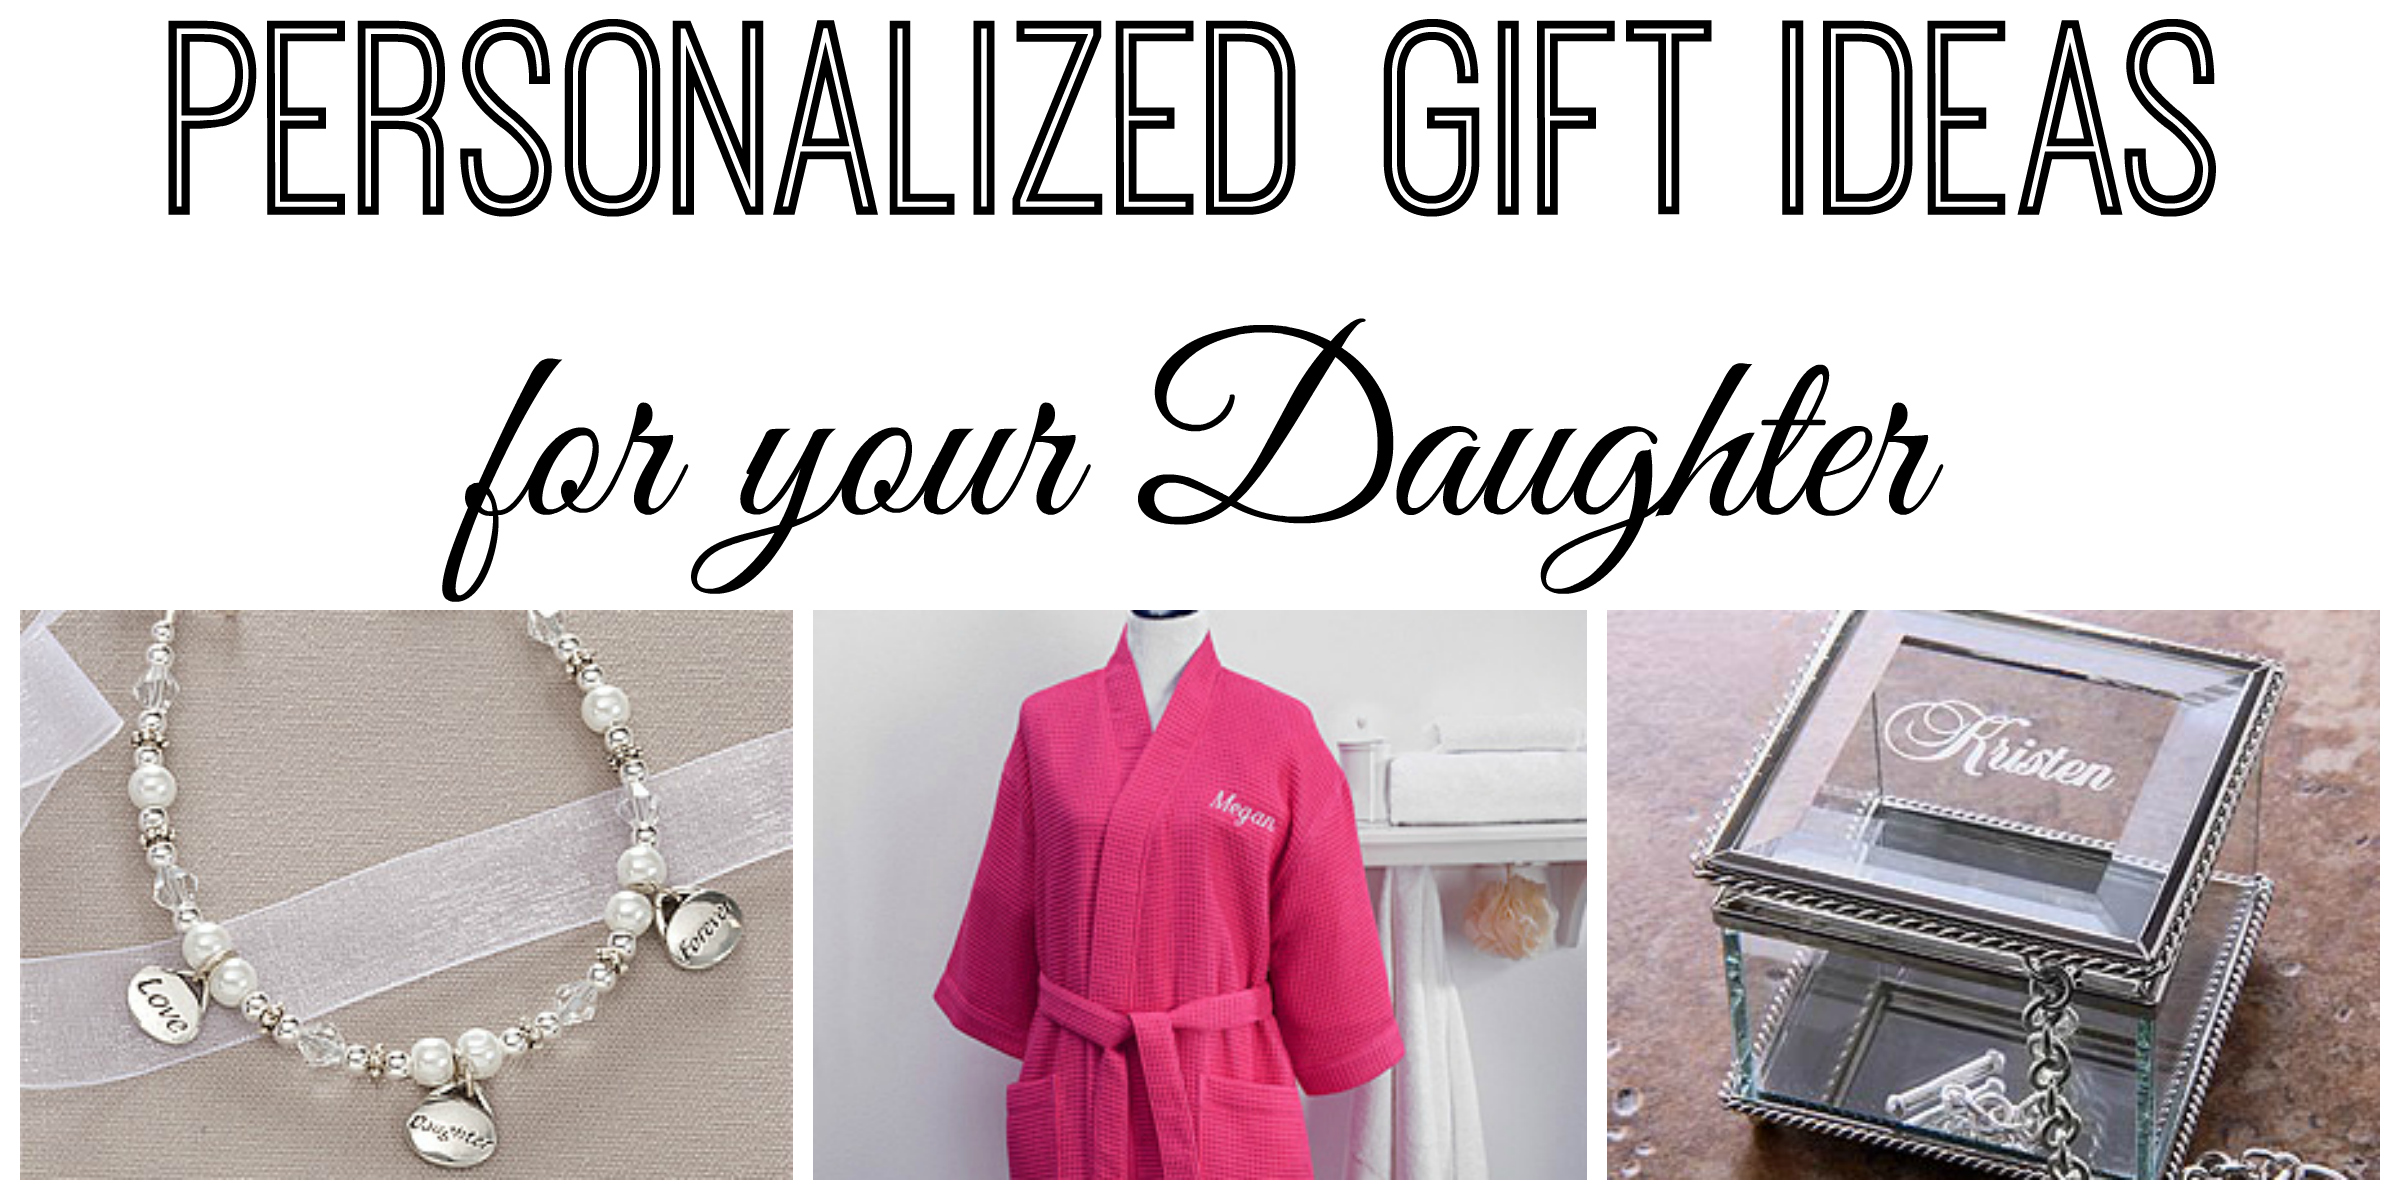 Personalized Christmas Gift Ideas for your Daughter ~ Personalization Mall's Holiday Gift Guide